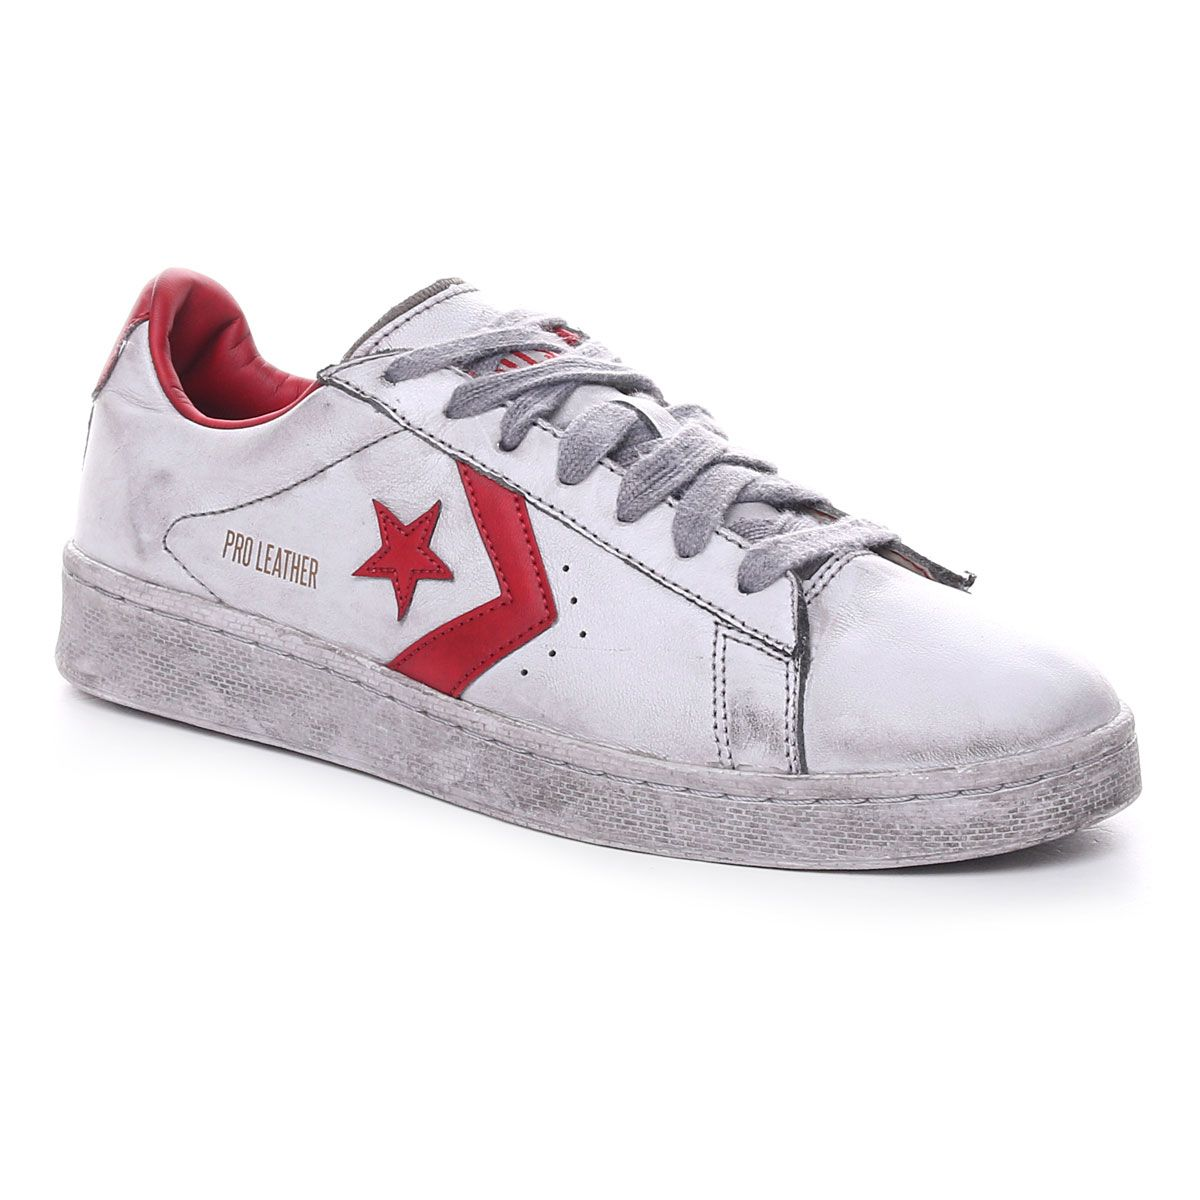 Converse Pro Leather Og Limited Uomo Bianco Rosso